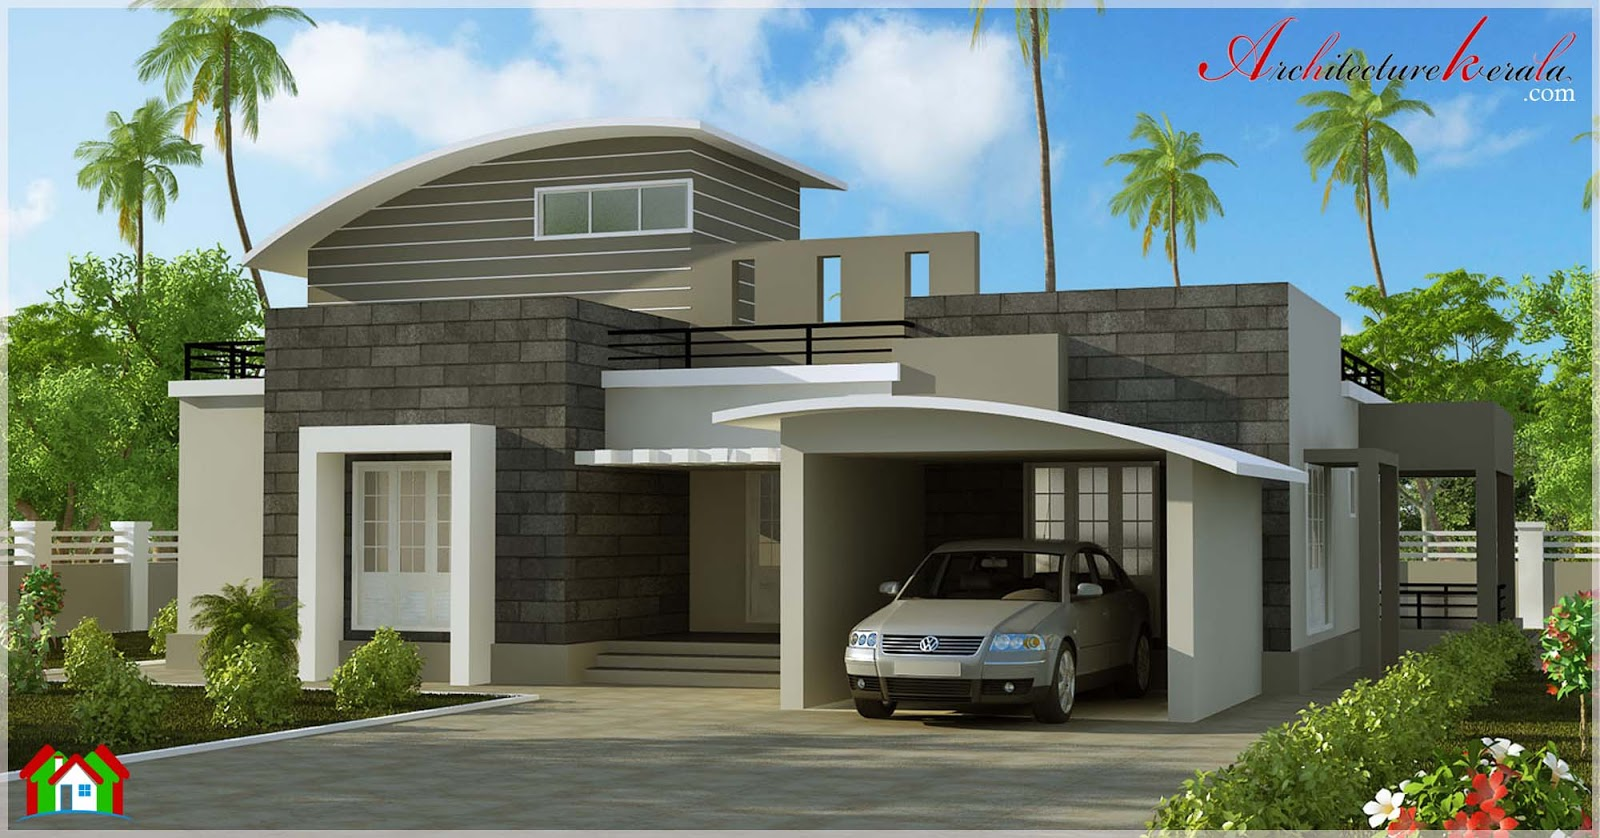 Contemporary style villa elevation architecture kerala for Kerala houses designs